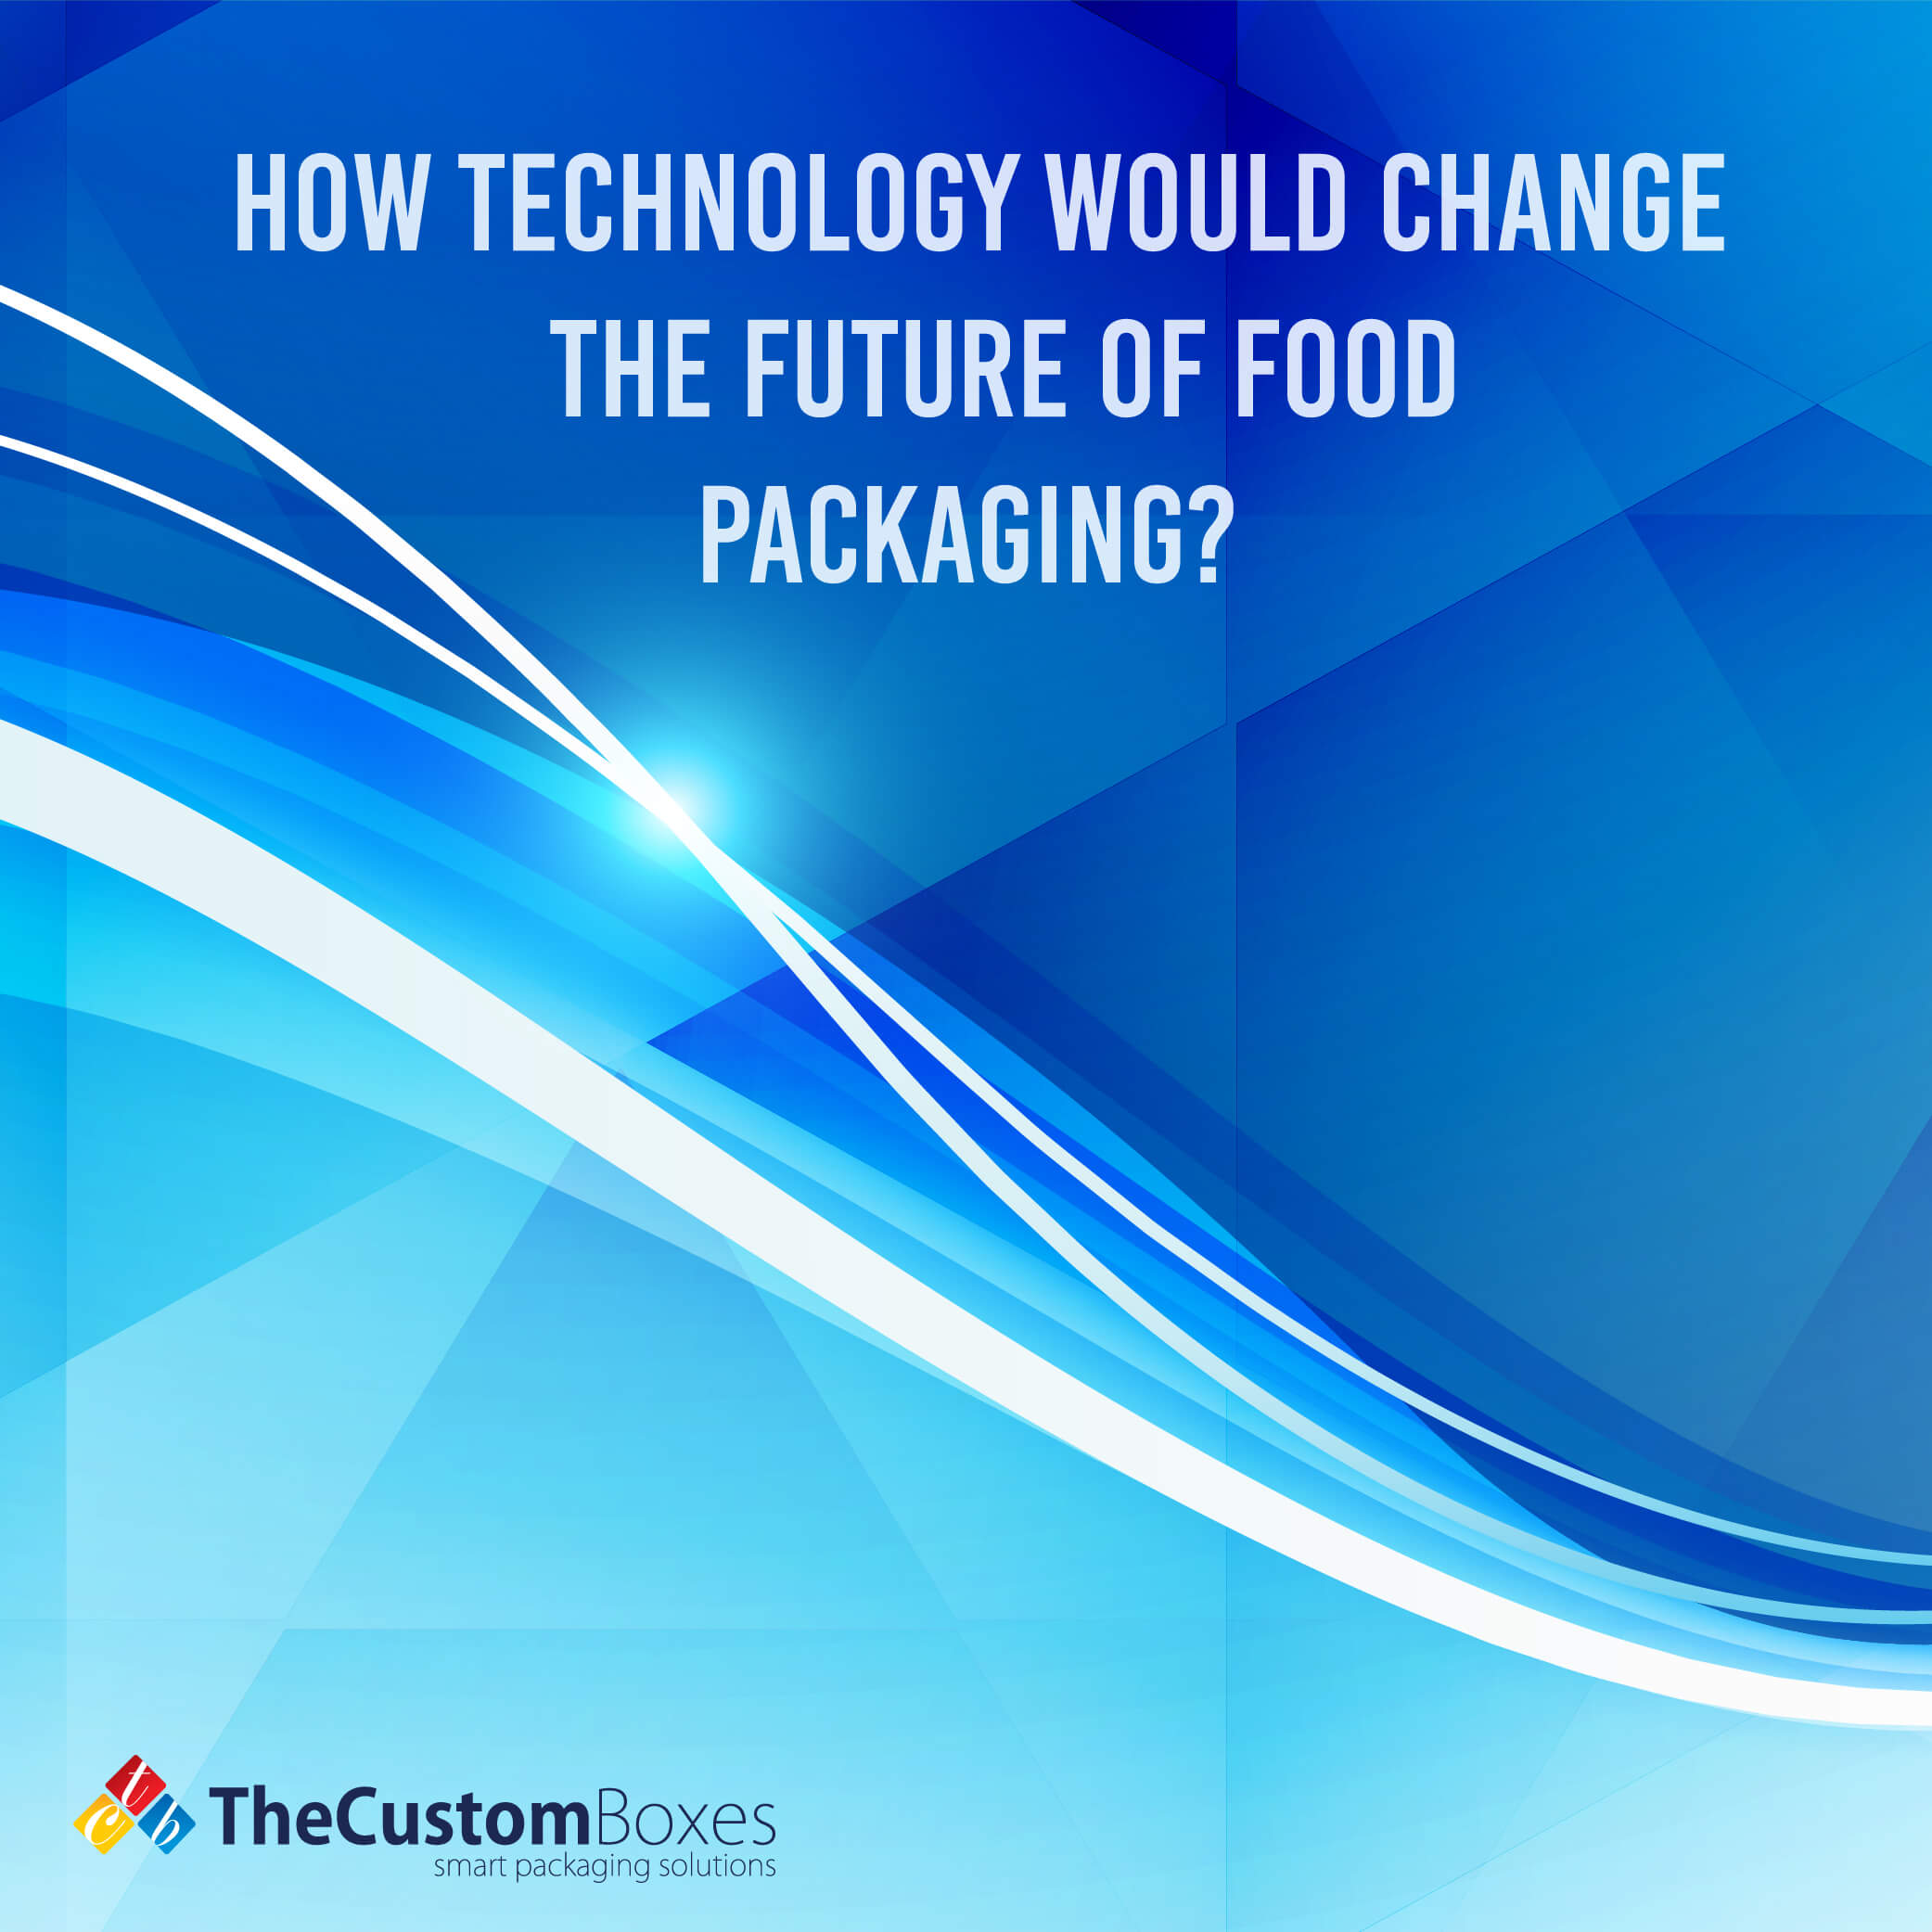 How Technology Would Change The Future of Food Packaging?